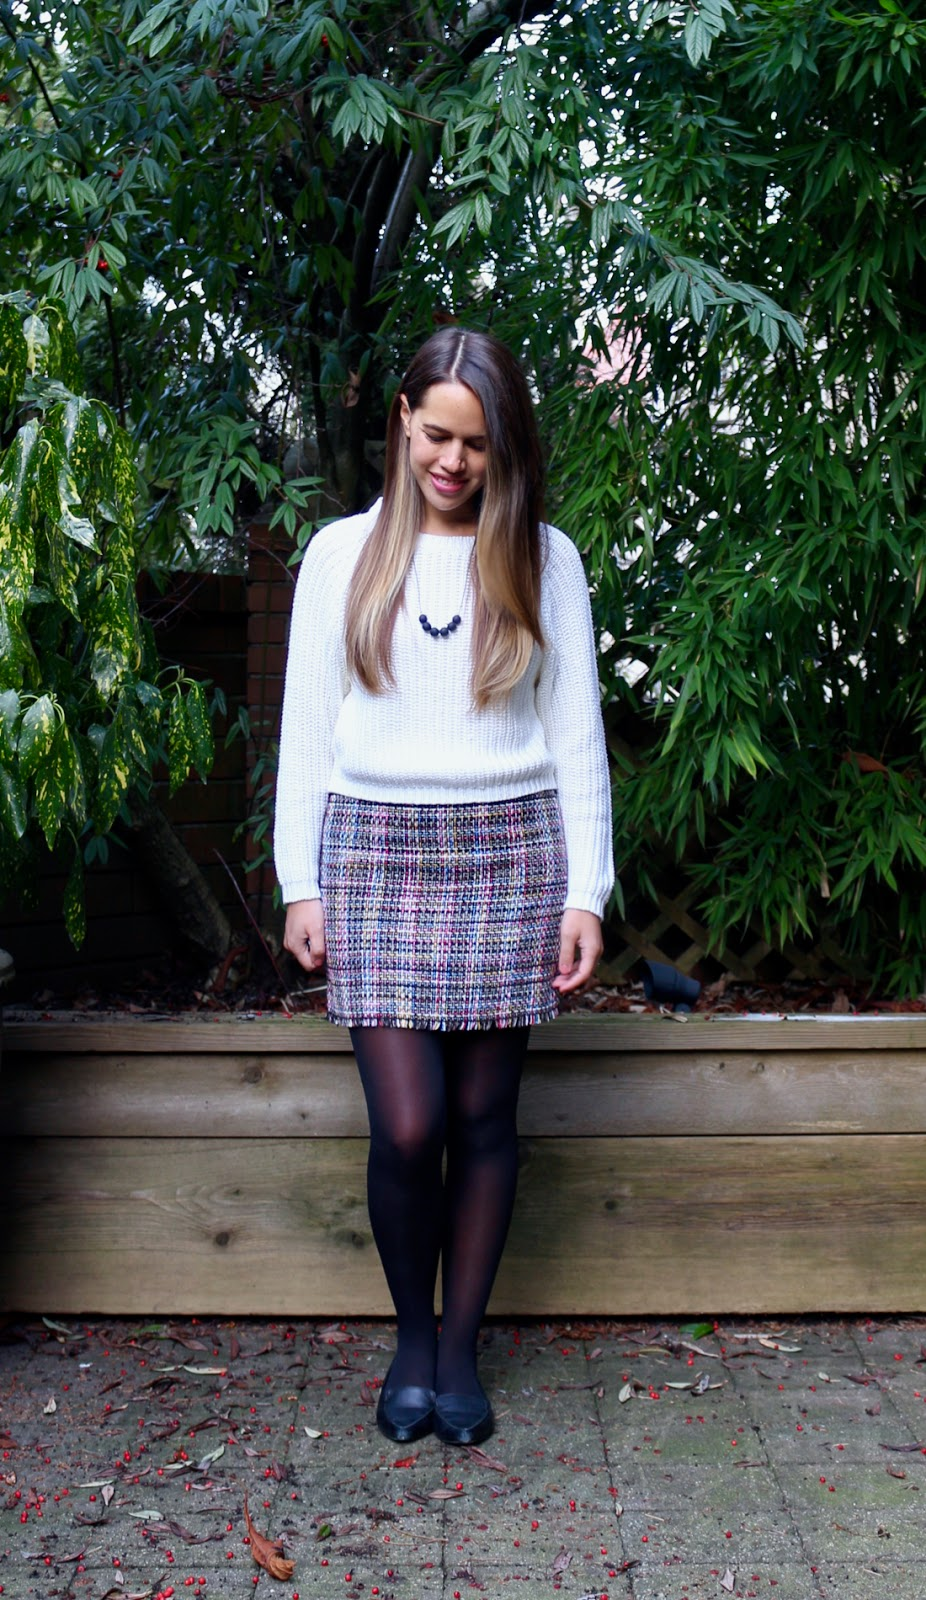 Jules in Flats - Tweed Skirt + Knit Sweater for Work (Business Casual Winter Workwear on a Budget)